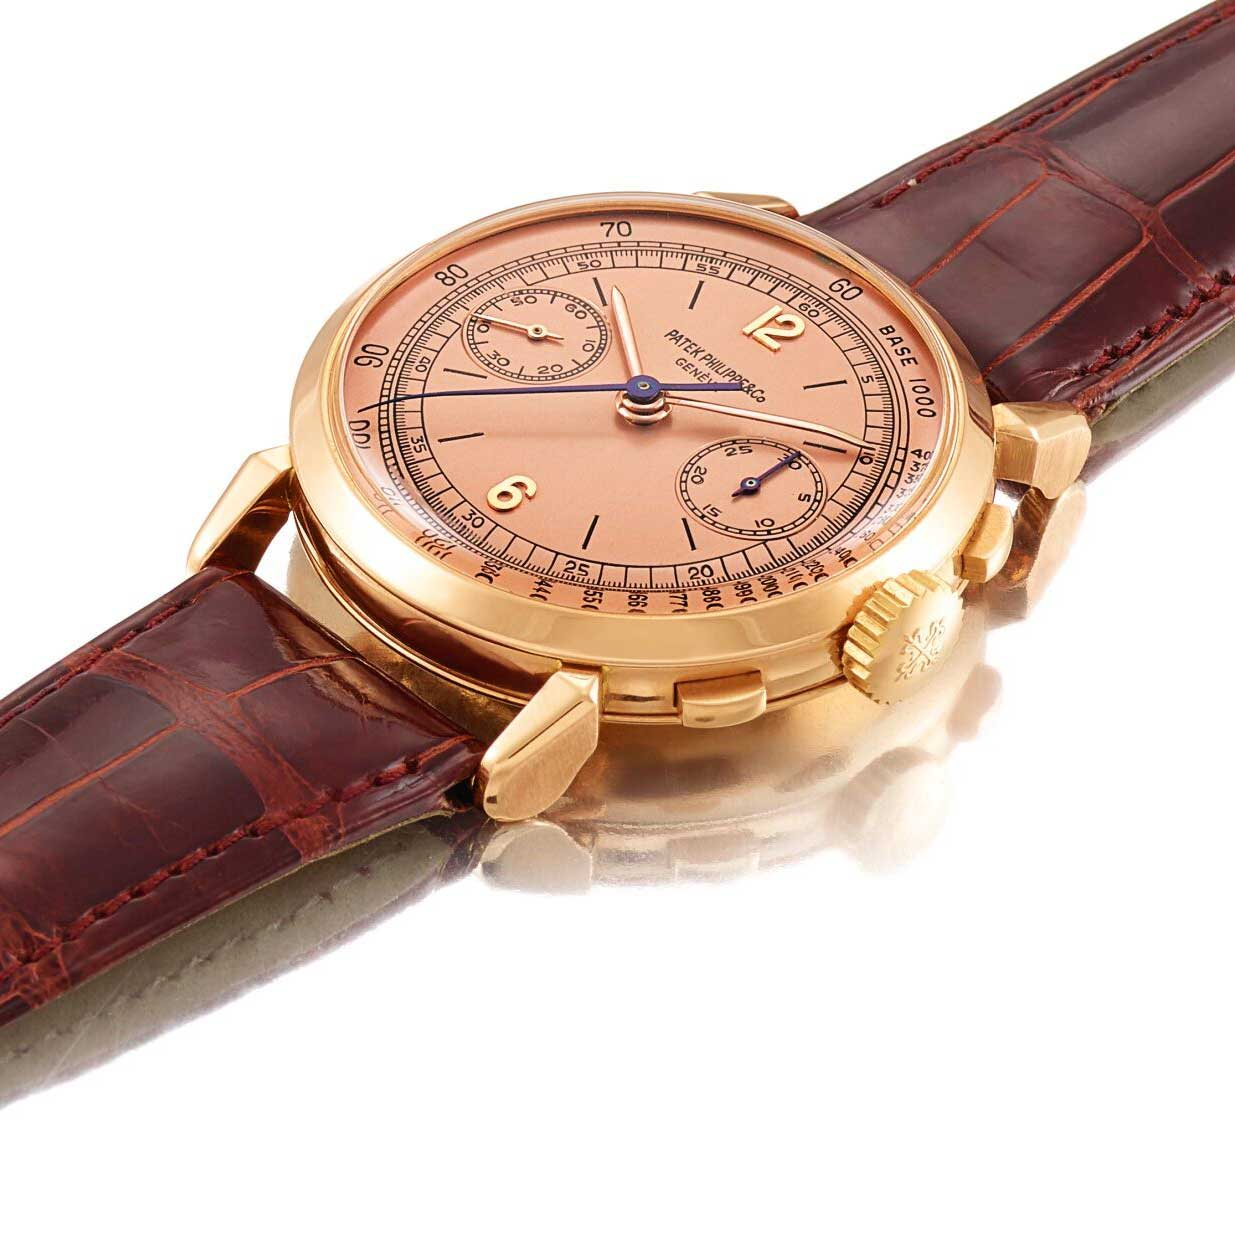 Spider lugs on the 1947 Patek Philippe ref. 1579 pink gold chronograph with Roman numerals and pink gold dial (Image: Sothebys.com)